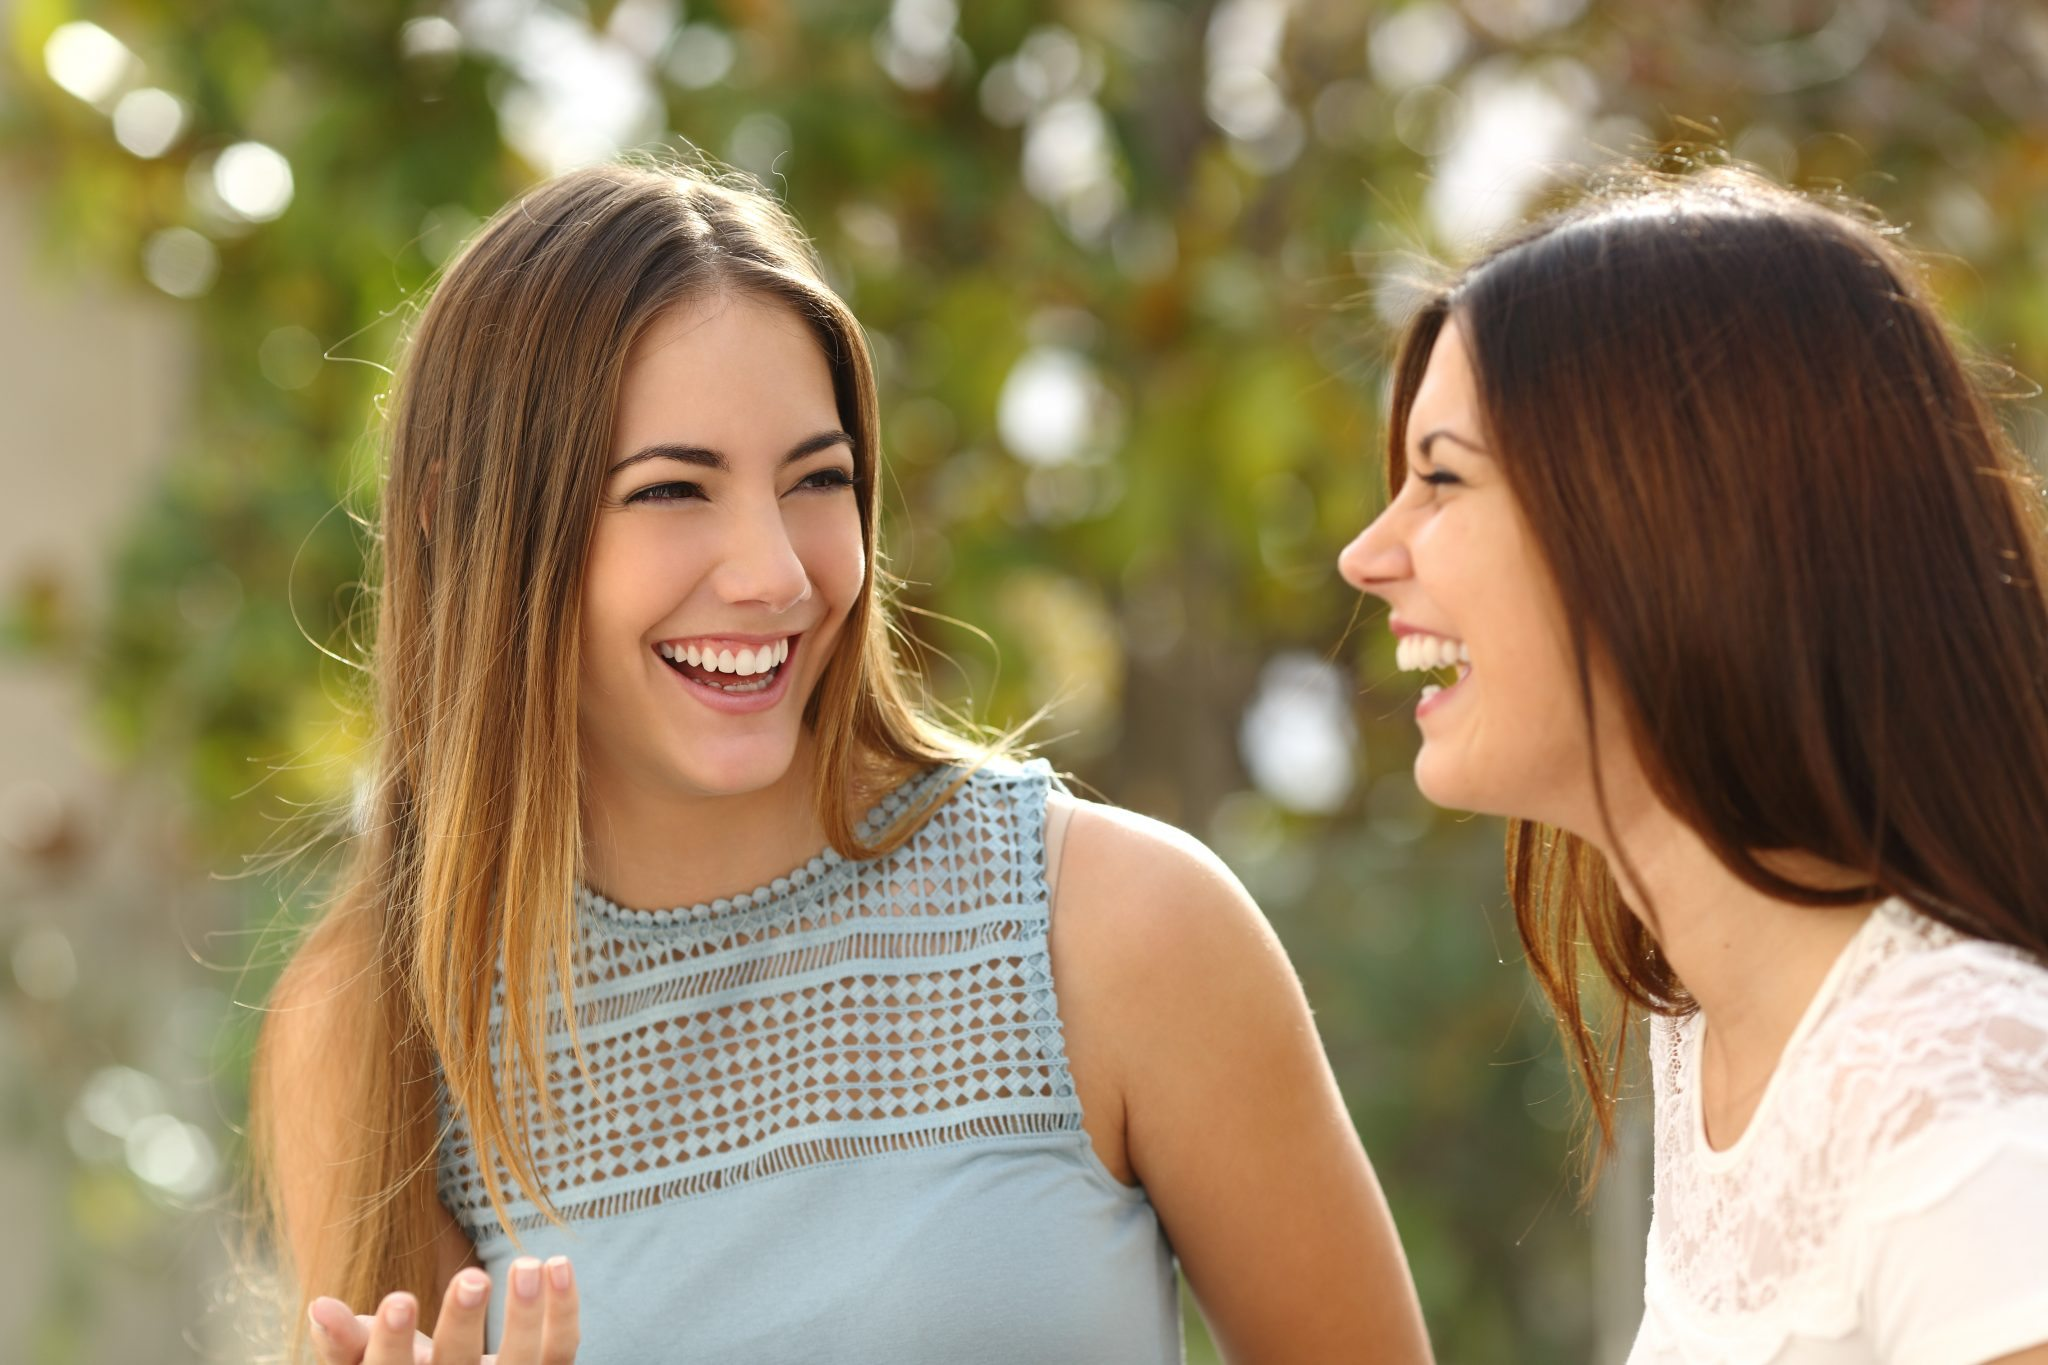 bigstock-Happy-Women-Talking-And-Laughi-87121232